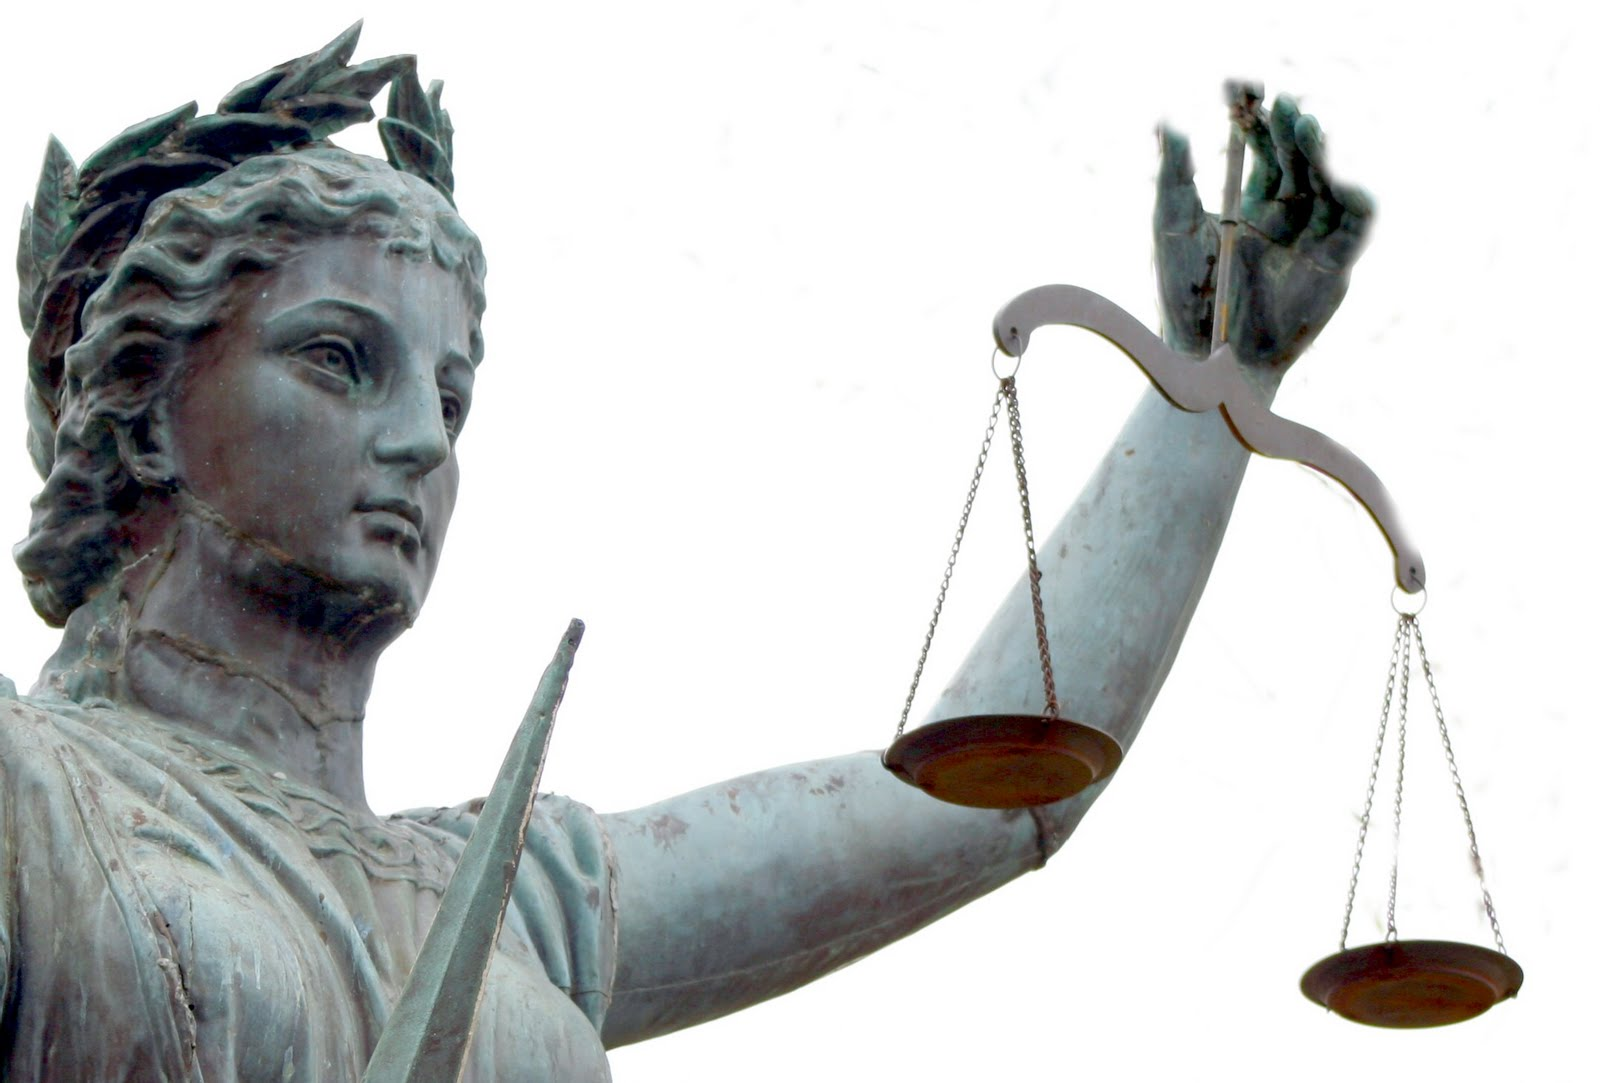 filename : scales-of-justice-statue.jpg